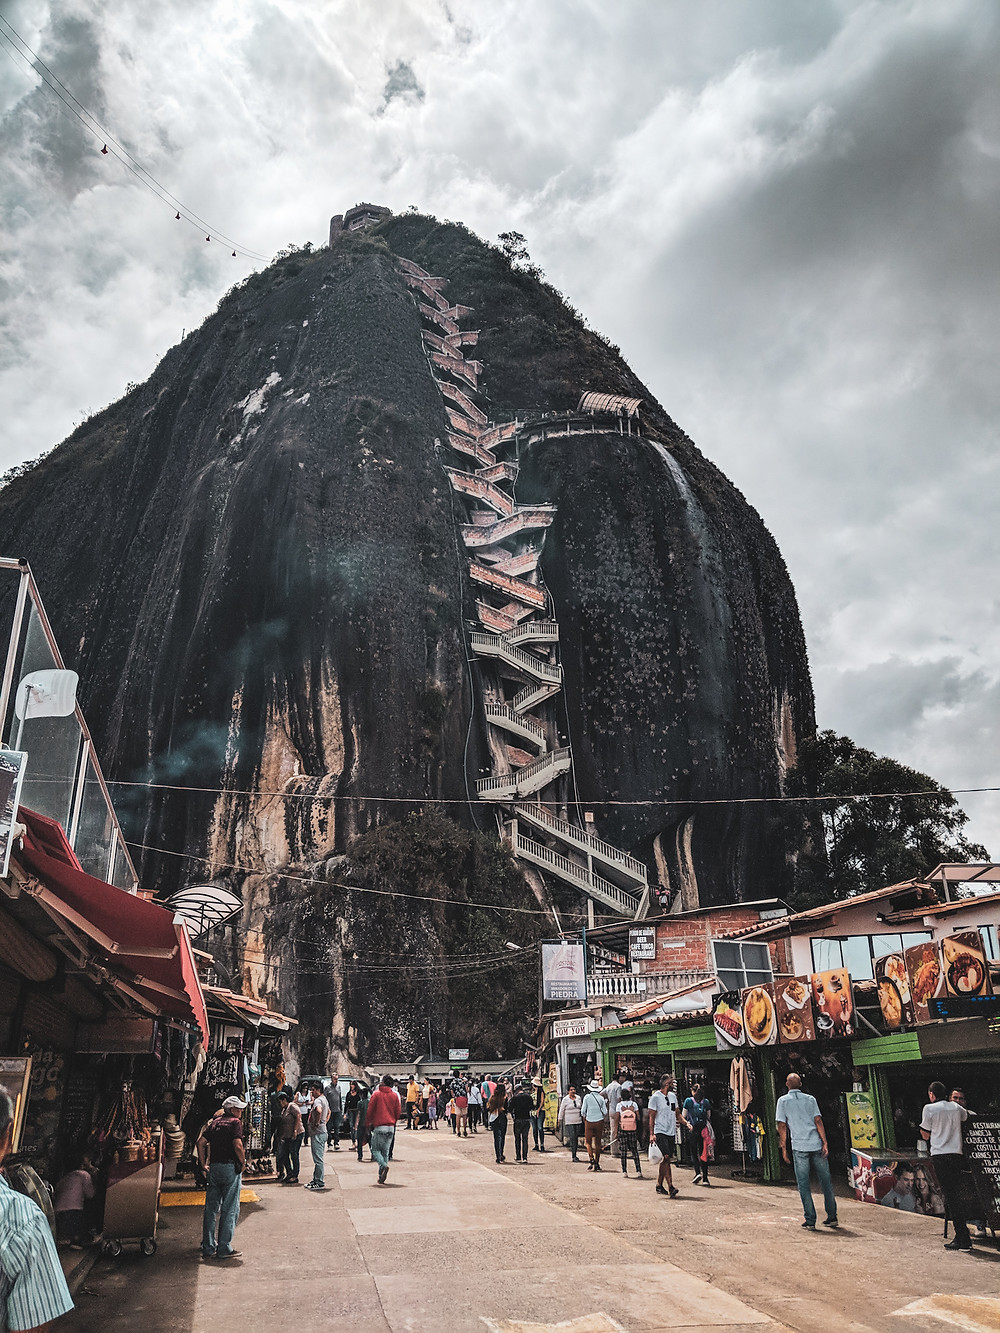 It takes more than 700 steps to reach the top of El Peñón near Guatapé, Colombia.